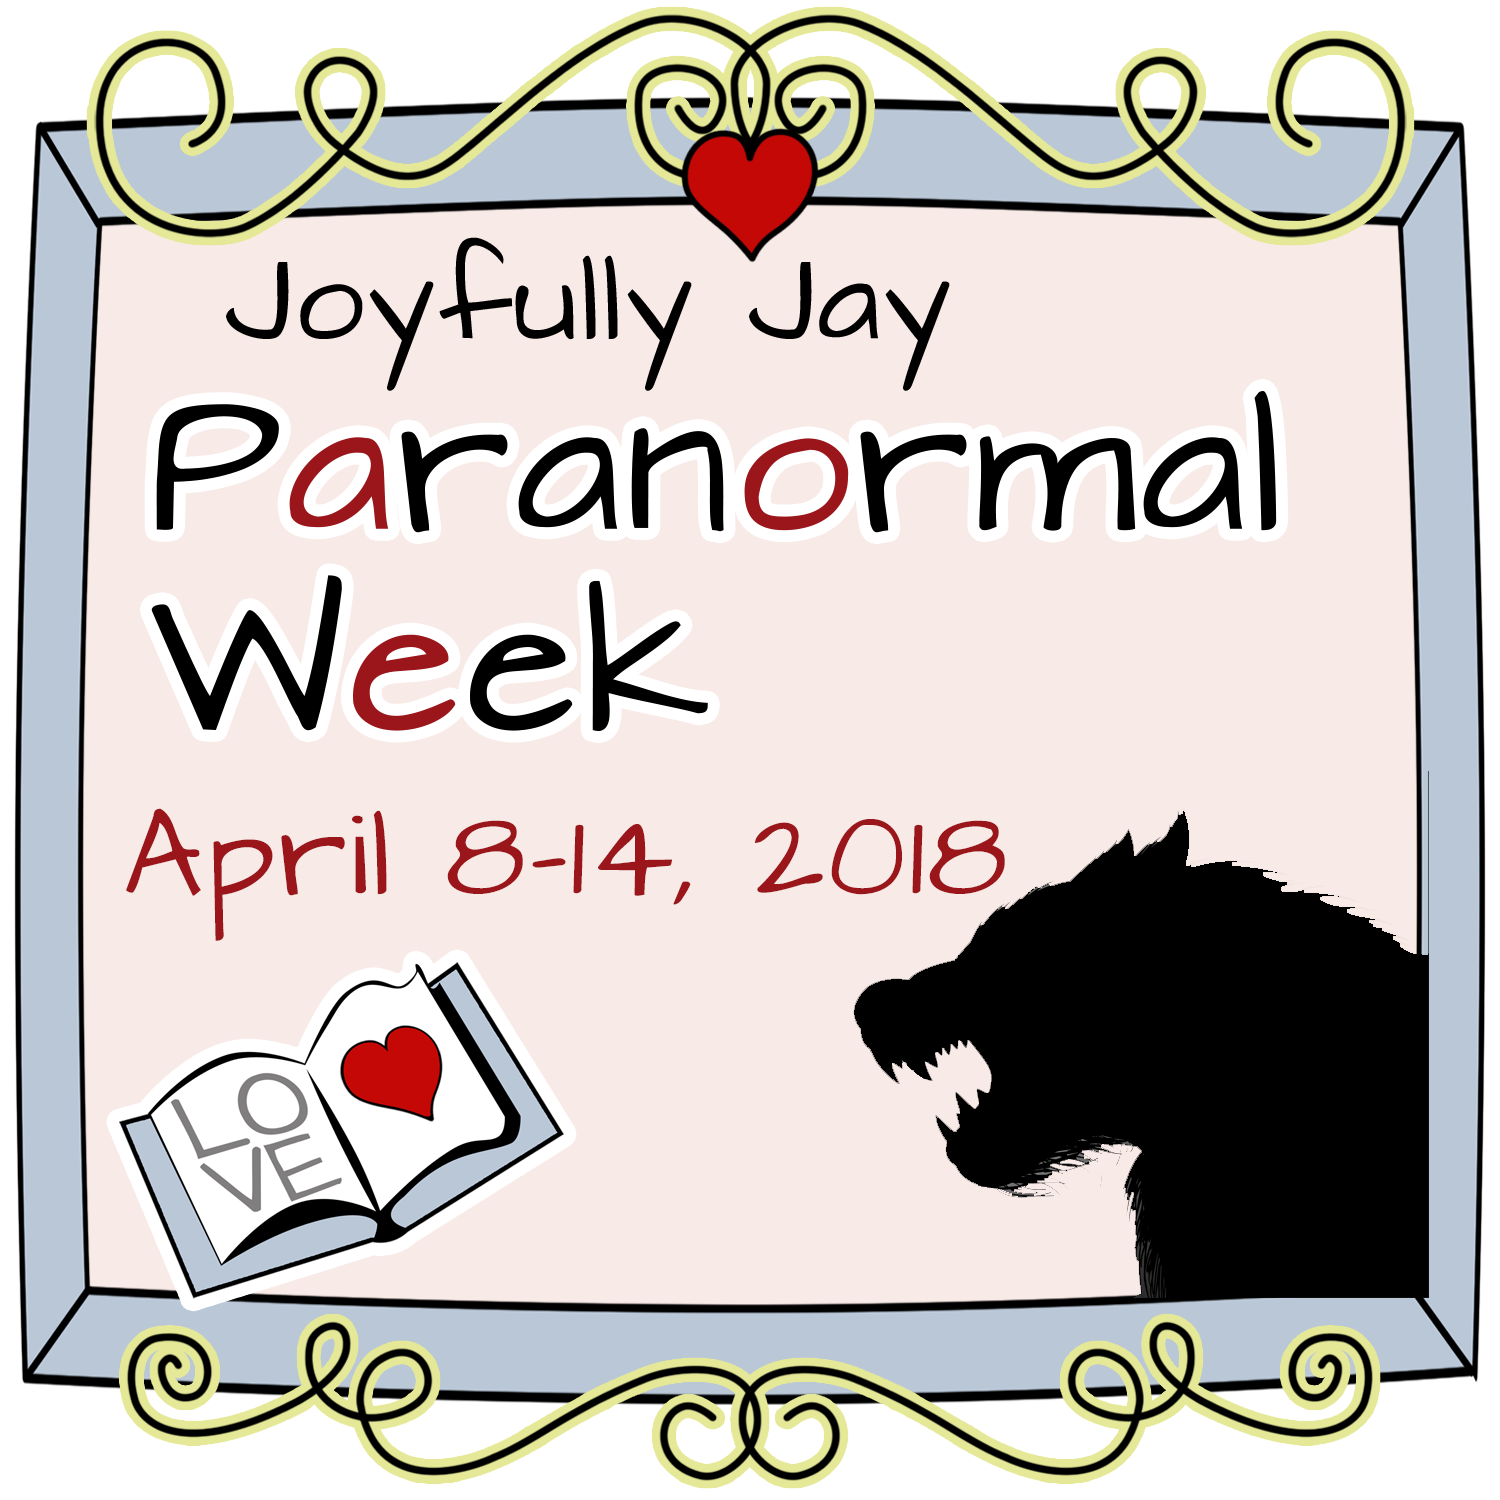 Paranormal Week Giveaways!!!